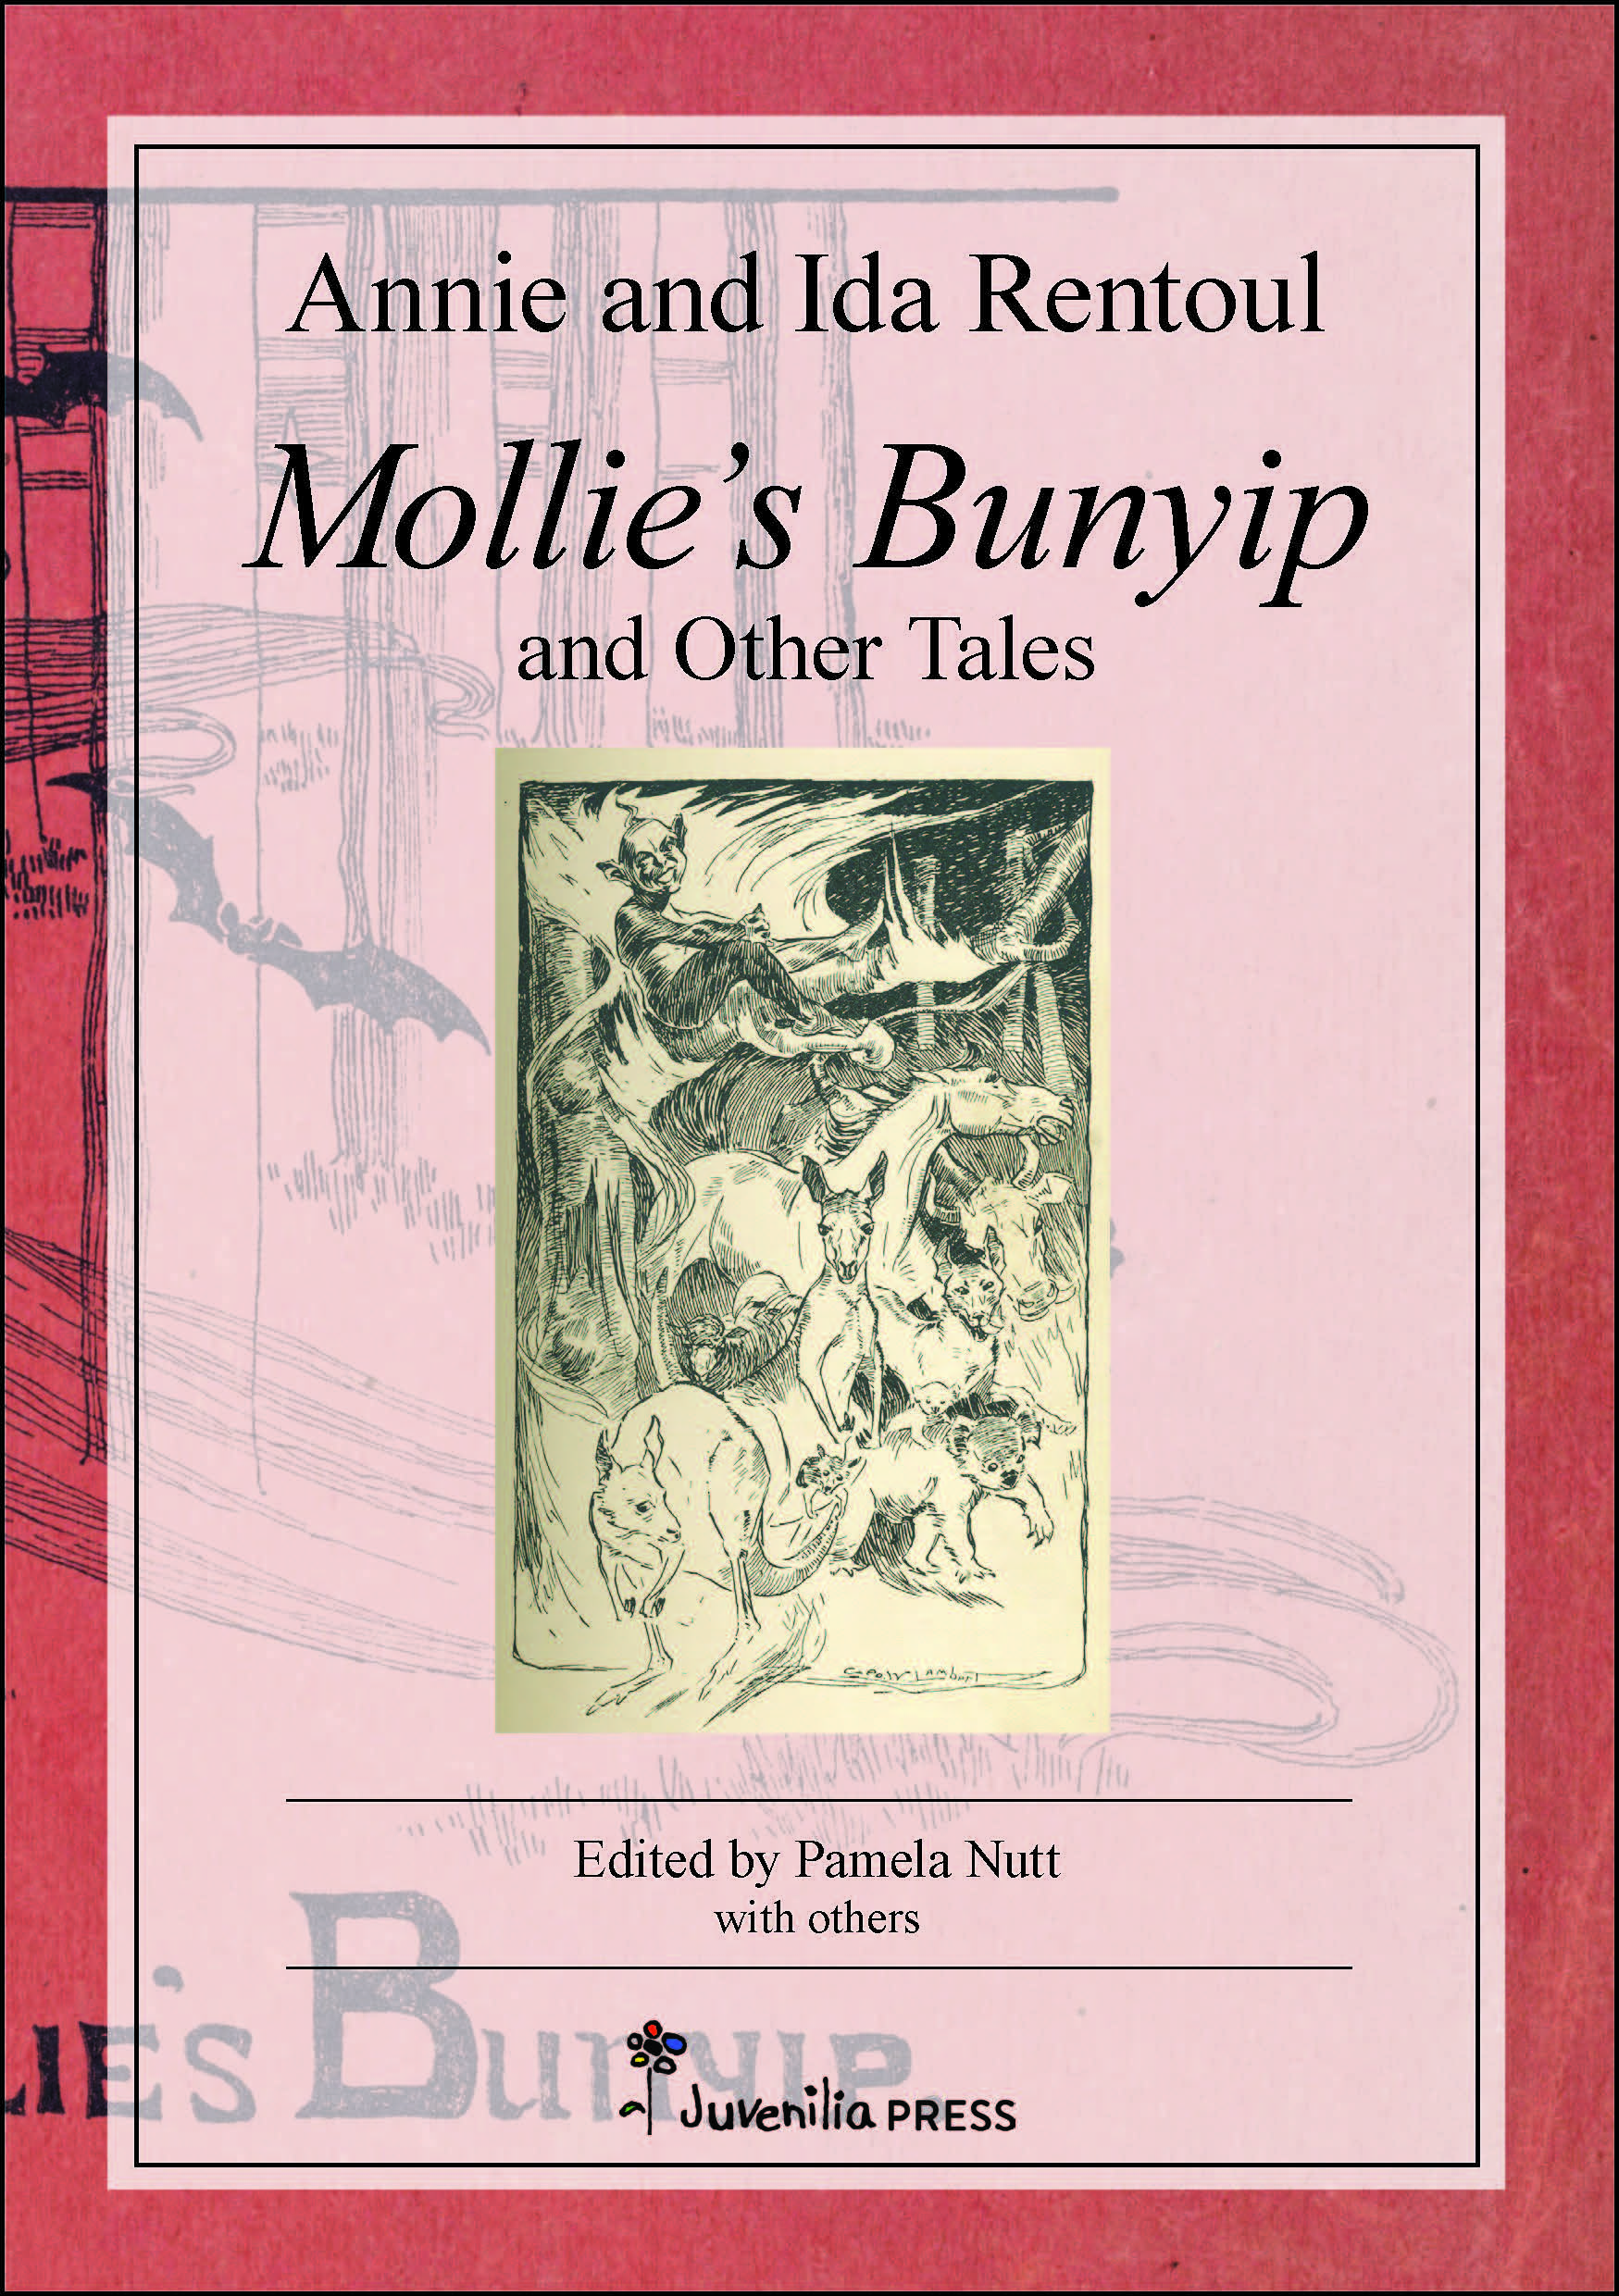 Mollie's Bunyip and Other Tales by Annie and Ida Rentoul